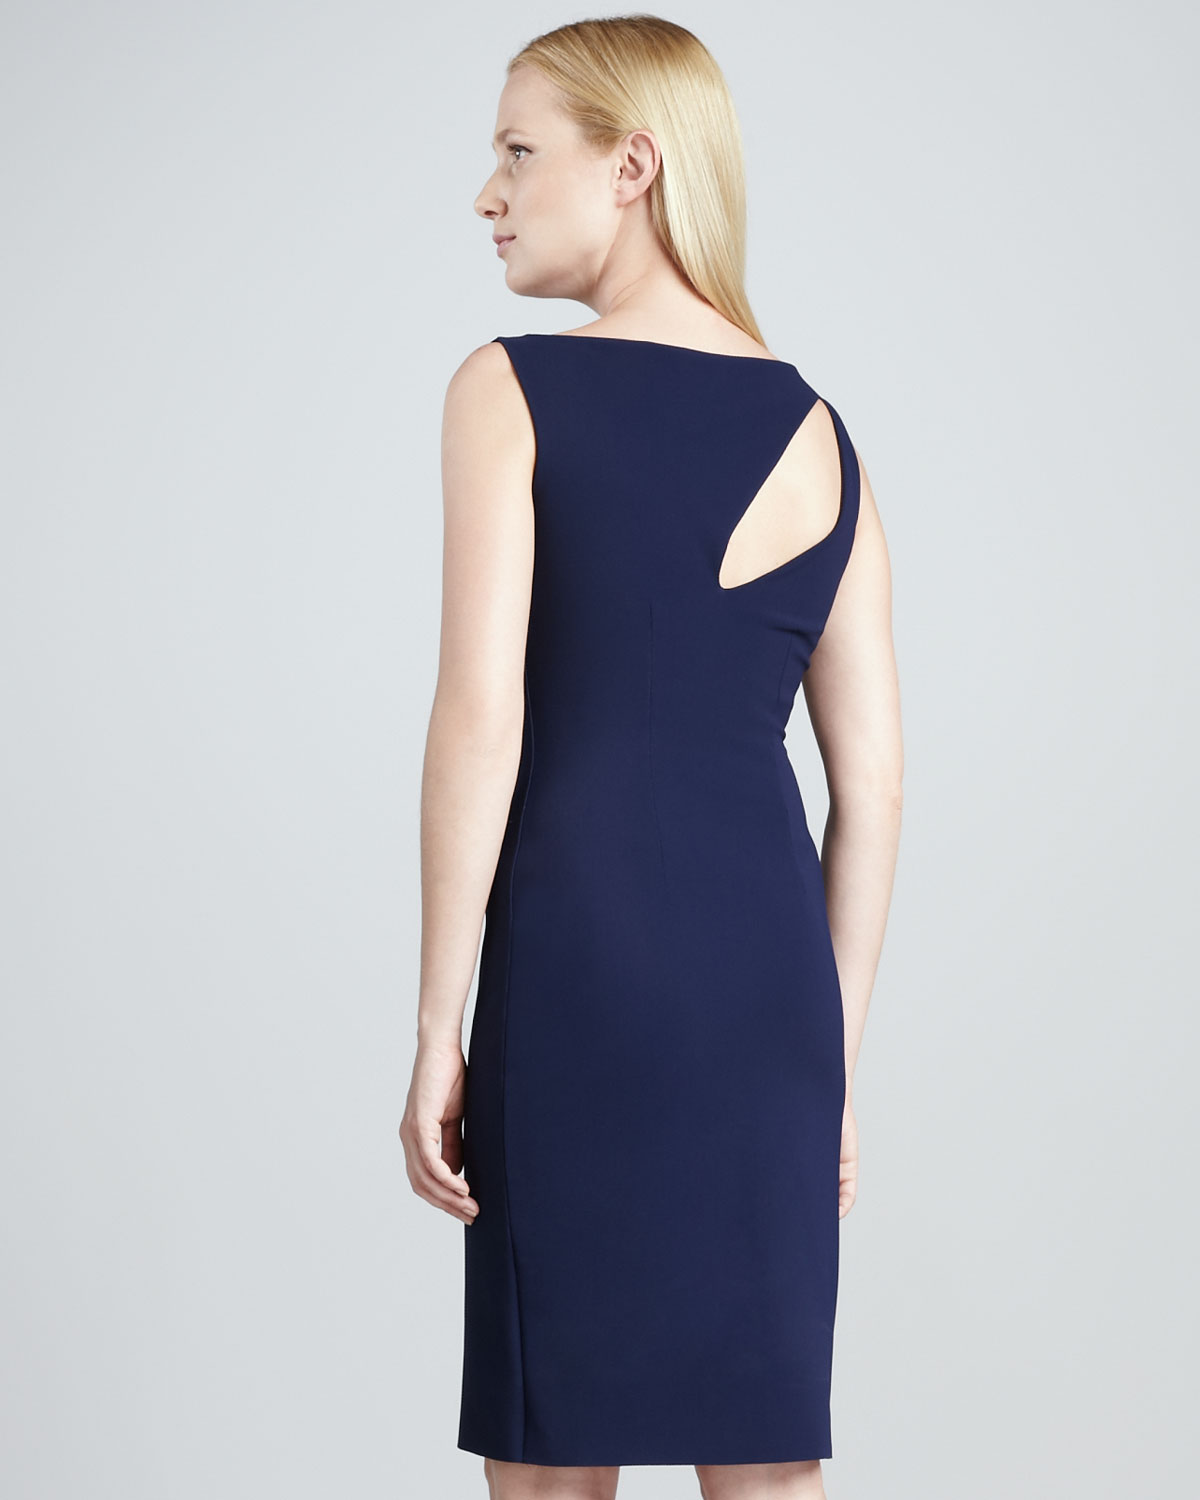 Chiara Boni The Most Popular Dress In America: La Petite Robe Di Chiara Boni Quinzia Boat-Neck